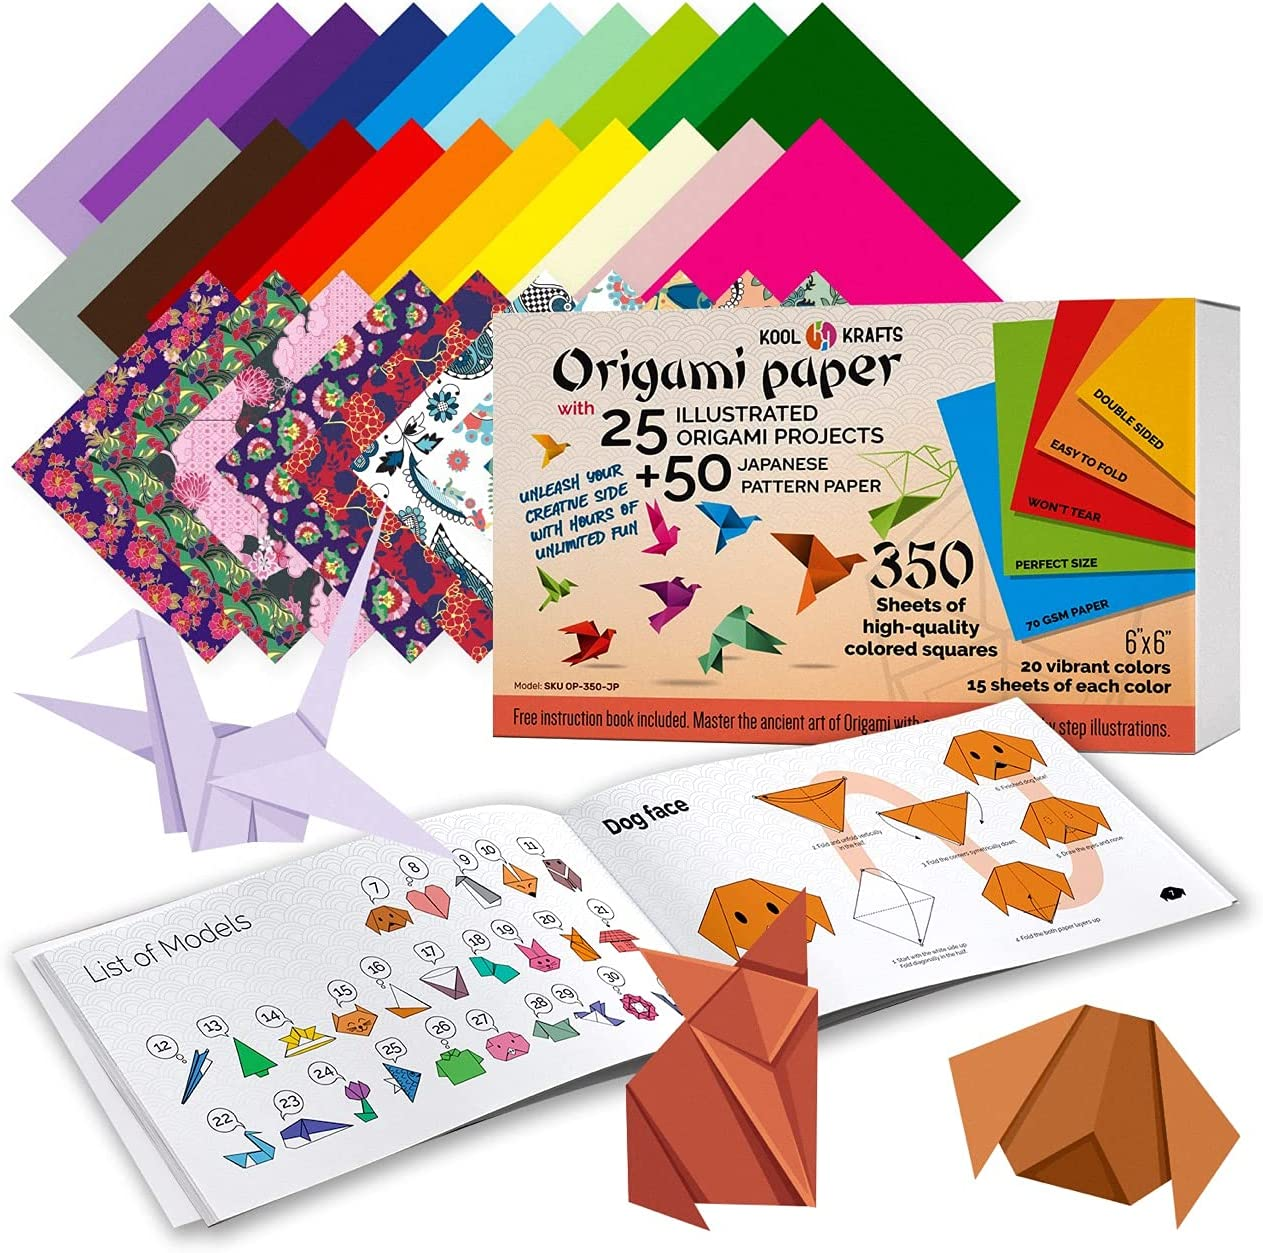 Origami Paper   350 Origami Paper Kit   Set Includes - 300 Sheets 20 Colors 6x6   50 Traditional Japanese Patterns   Origami Book 25 Easy Colored Projects   Crafts for Kids   Art Supplies Kids 9-12